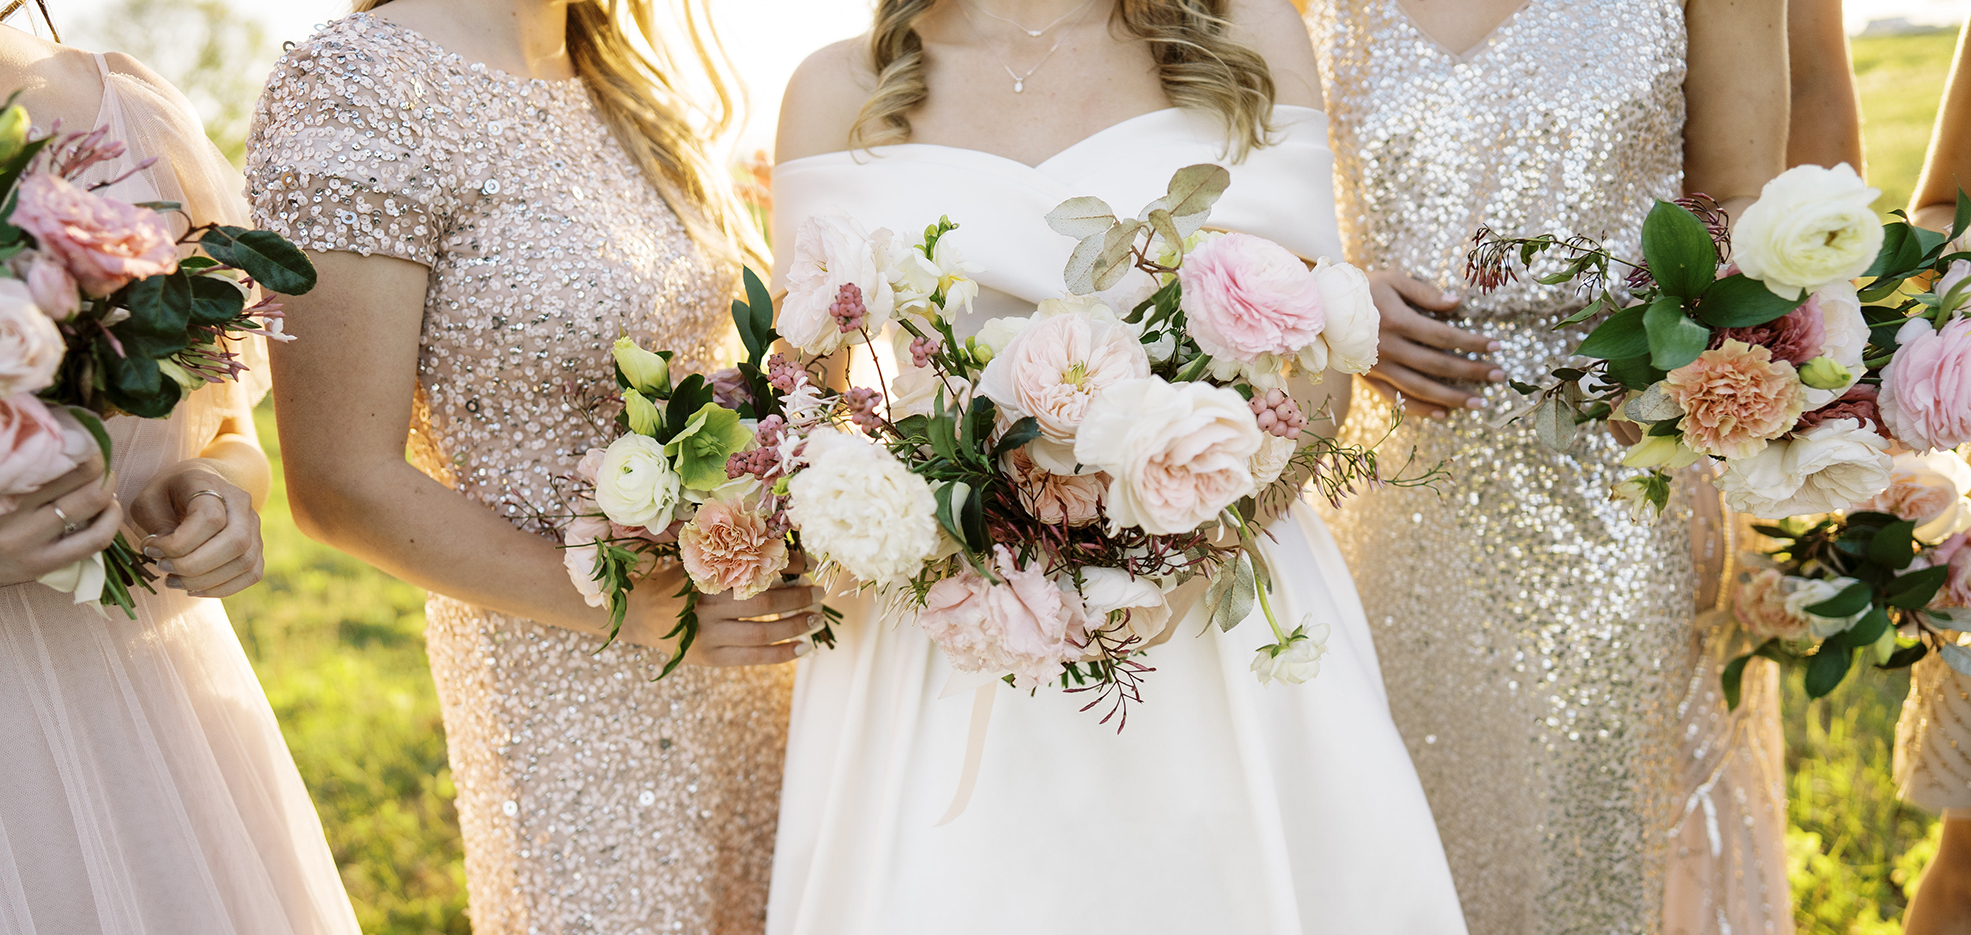 An up close photo of the bride's wedding bouquet with her bridesmaids behind her.